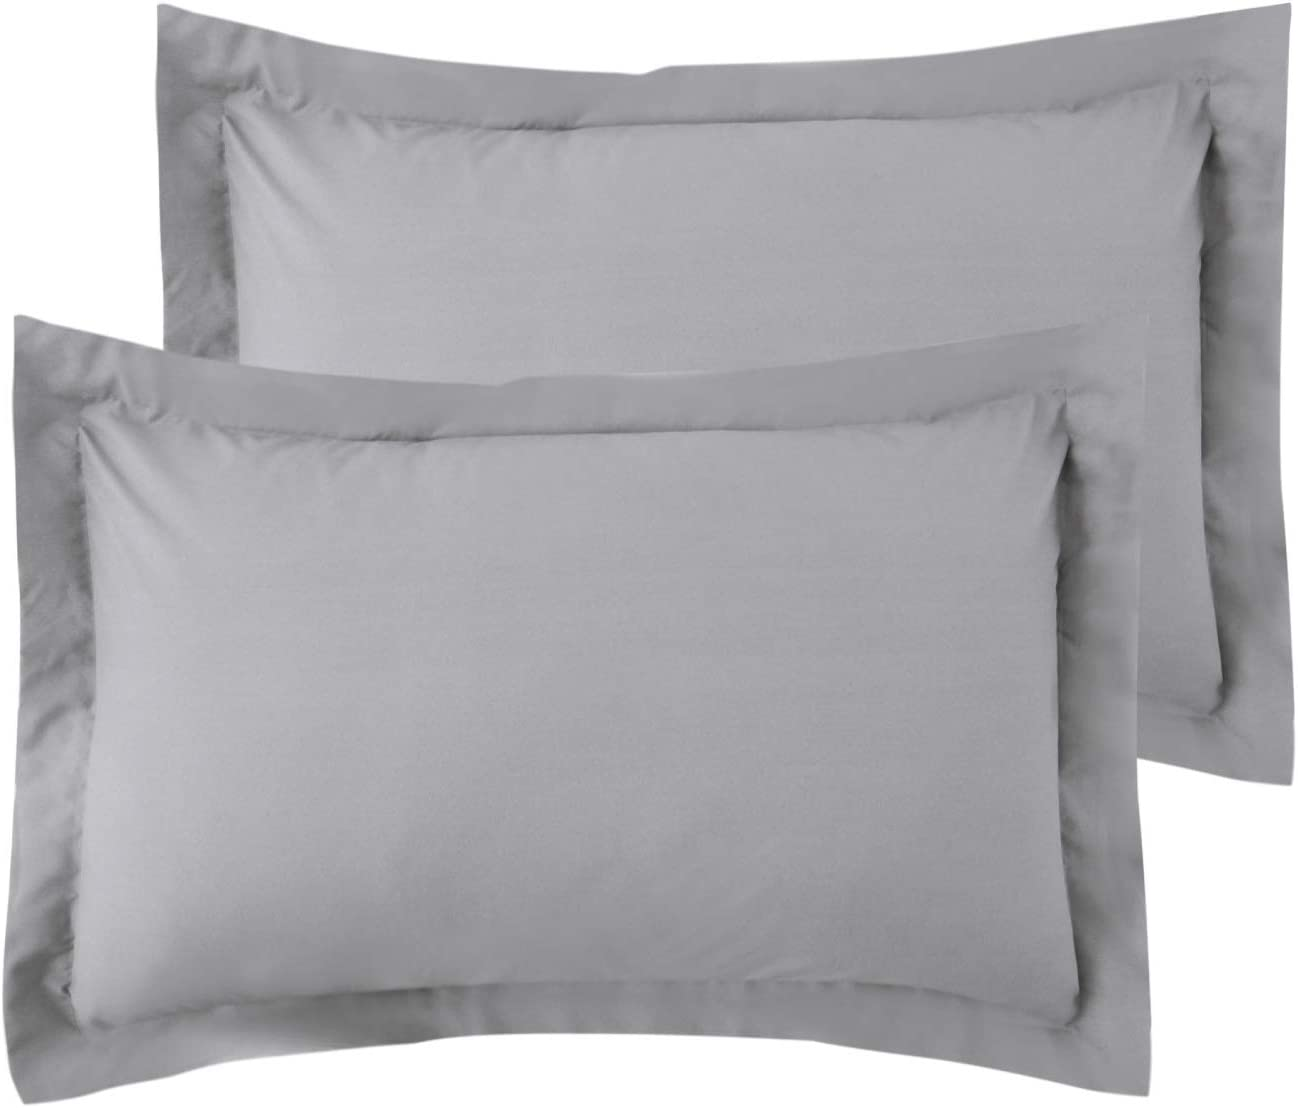 Bedsure King Pillow Shams Set of 2, Brushed Microfiber Light Grey Bed Pillow Shams for Queen Bed, Super Soft and Cozy 20x36 Inch Shams Envelope Closure